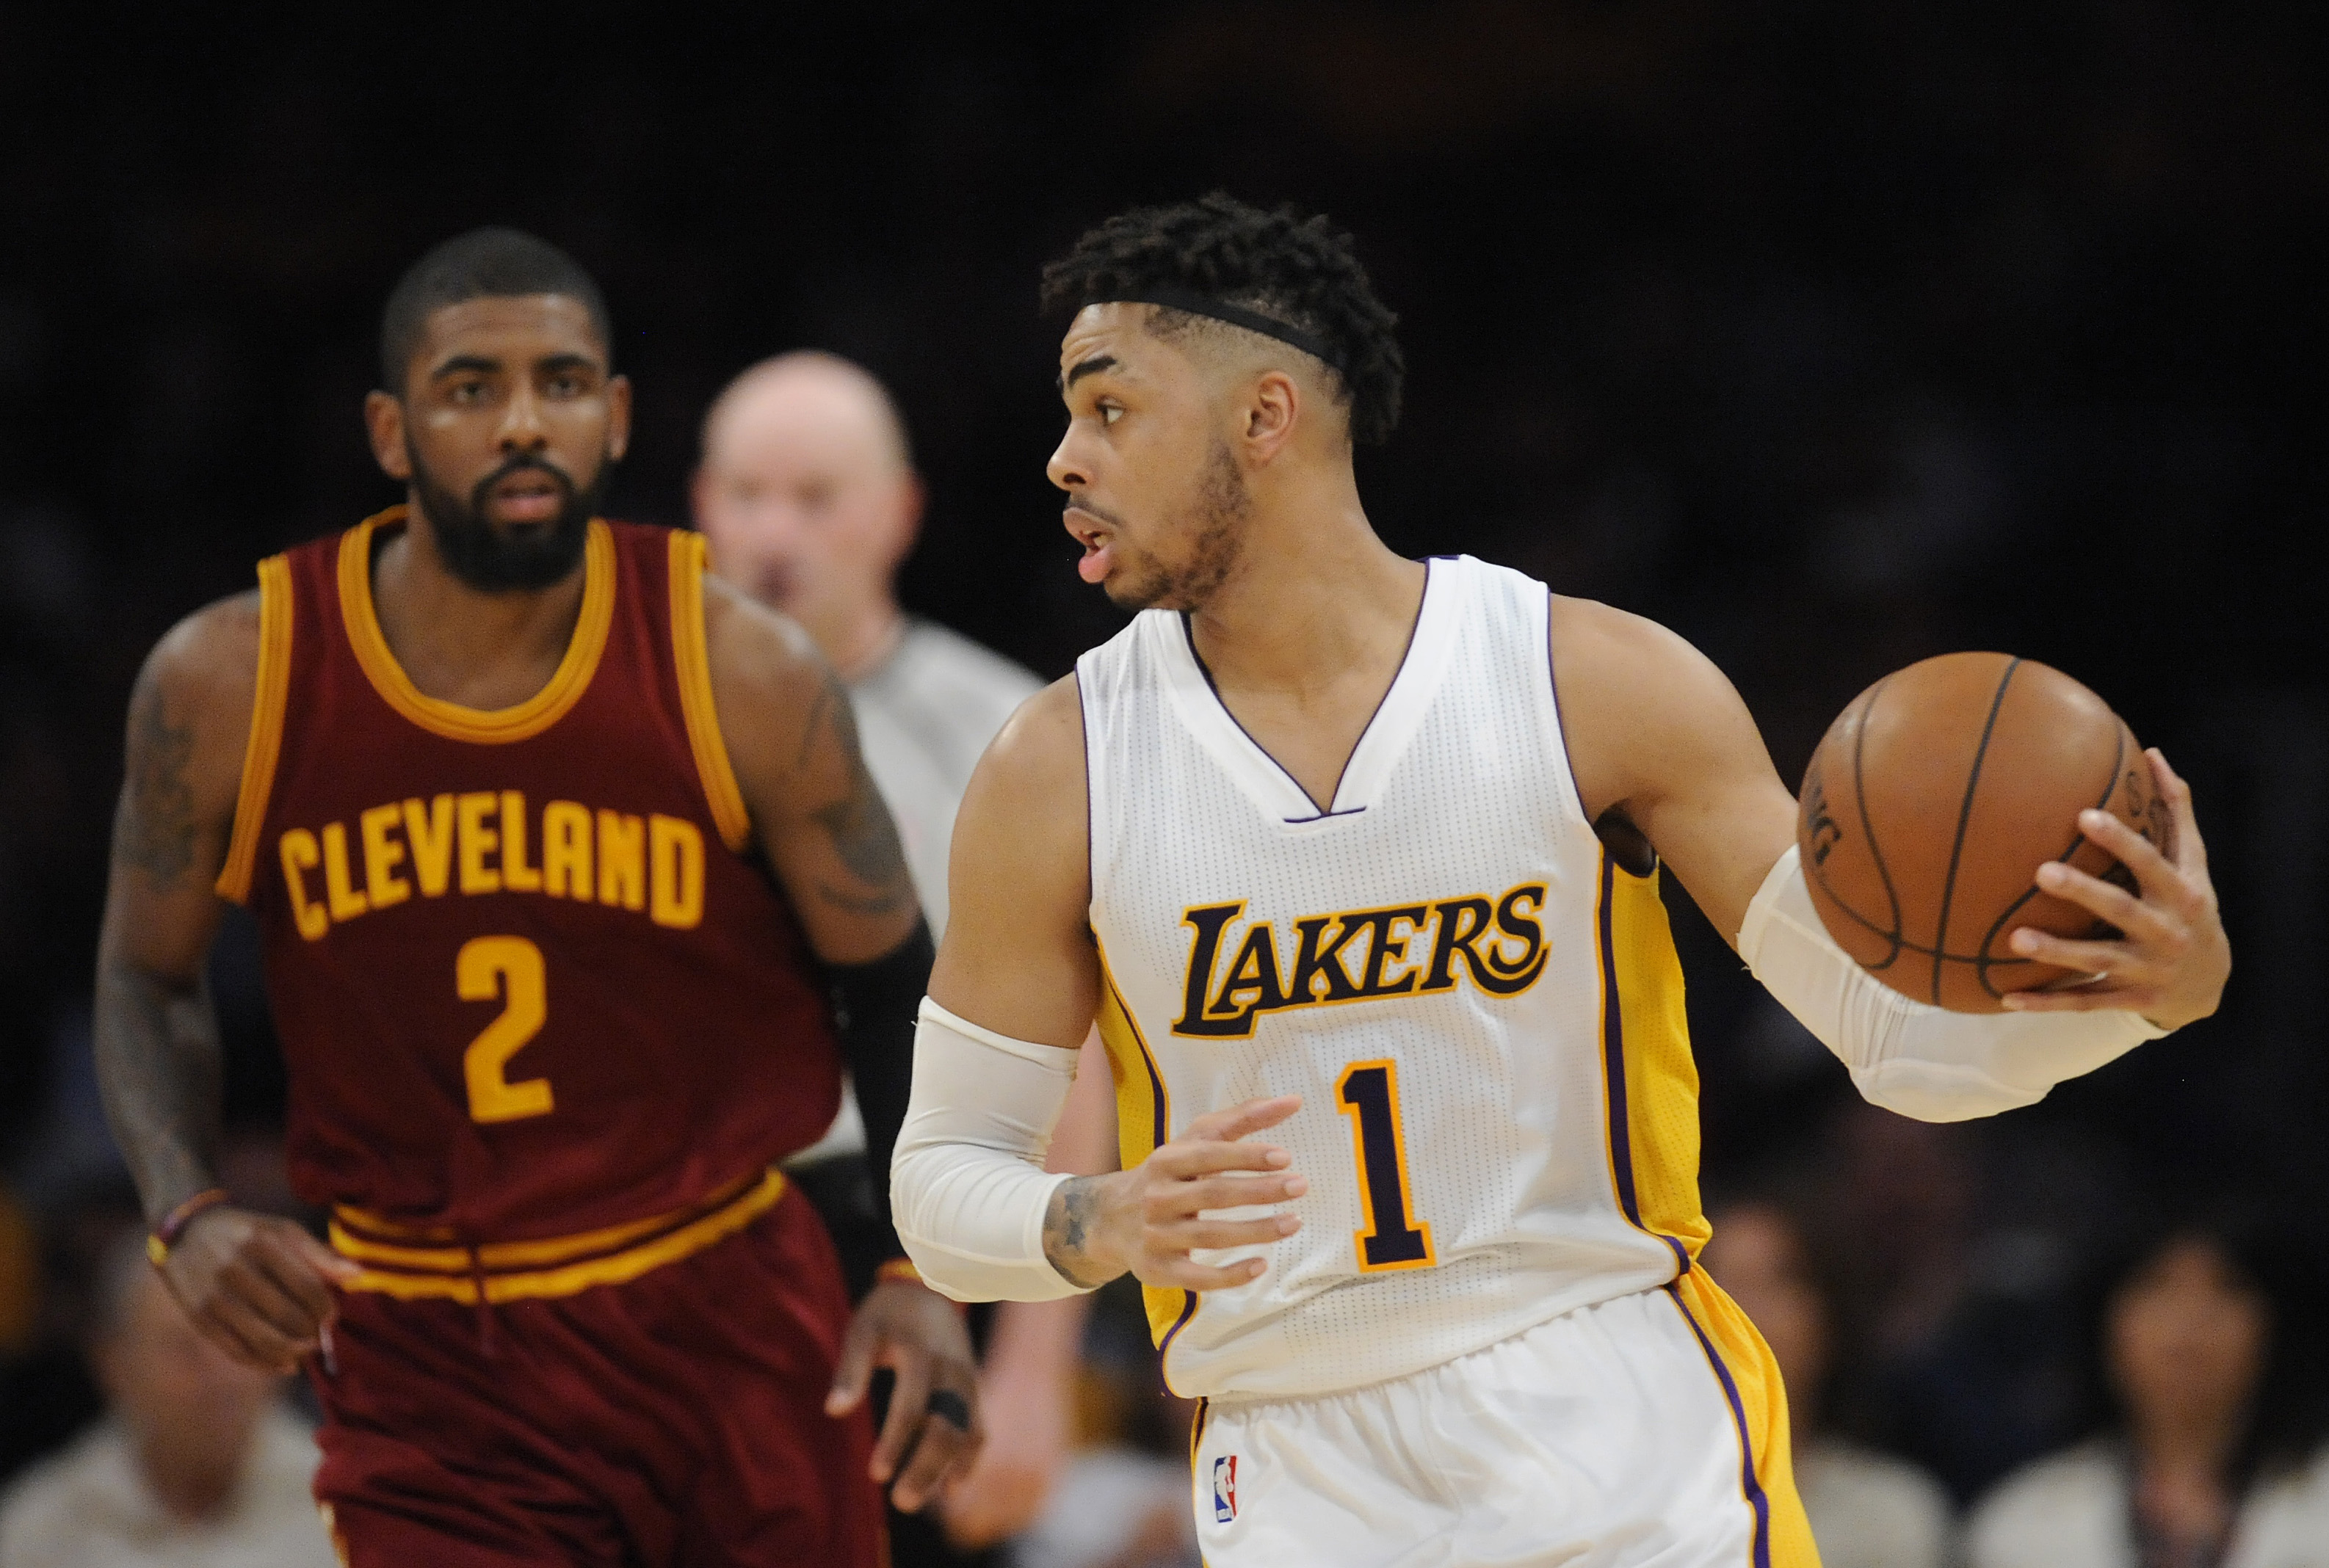 9959277-nba-cleveland-cavaliers-at-los-angeles-lakers